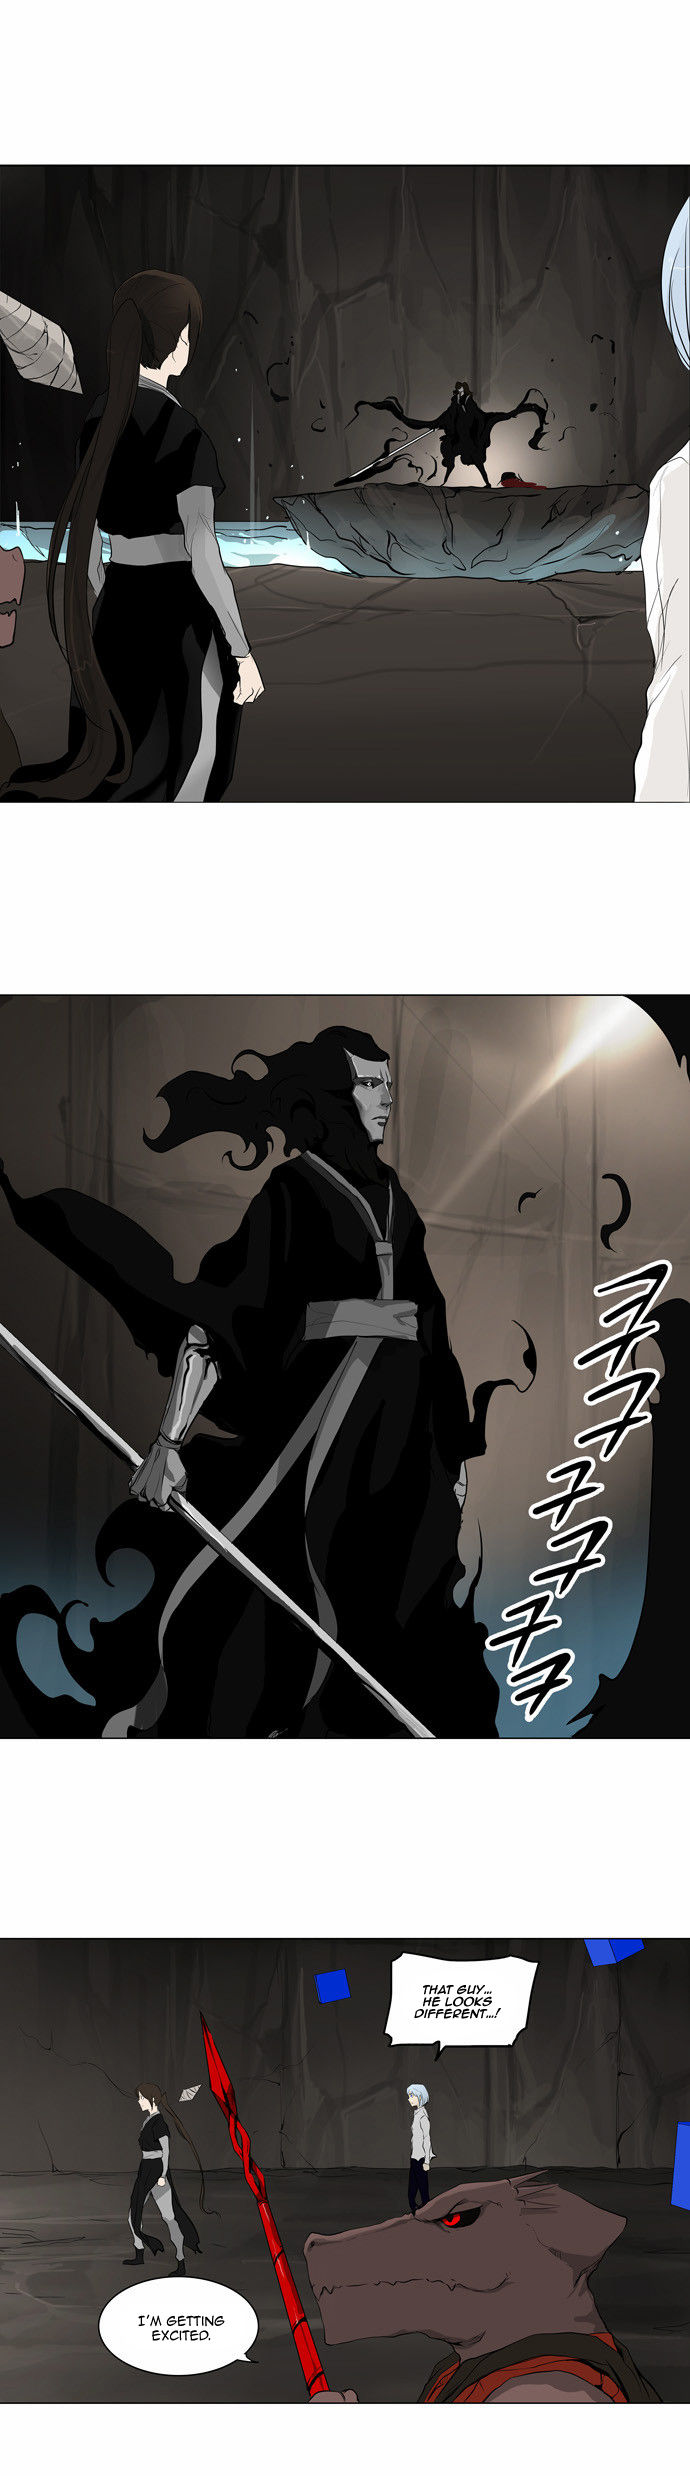 Tower of God 180 Page 1